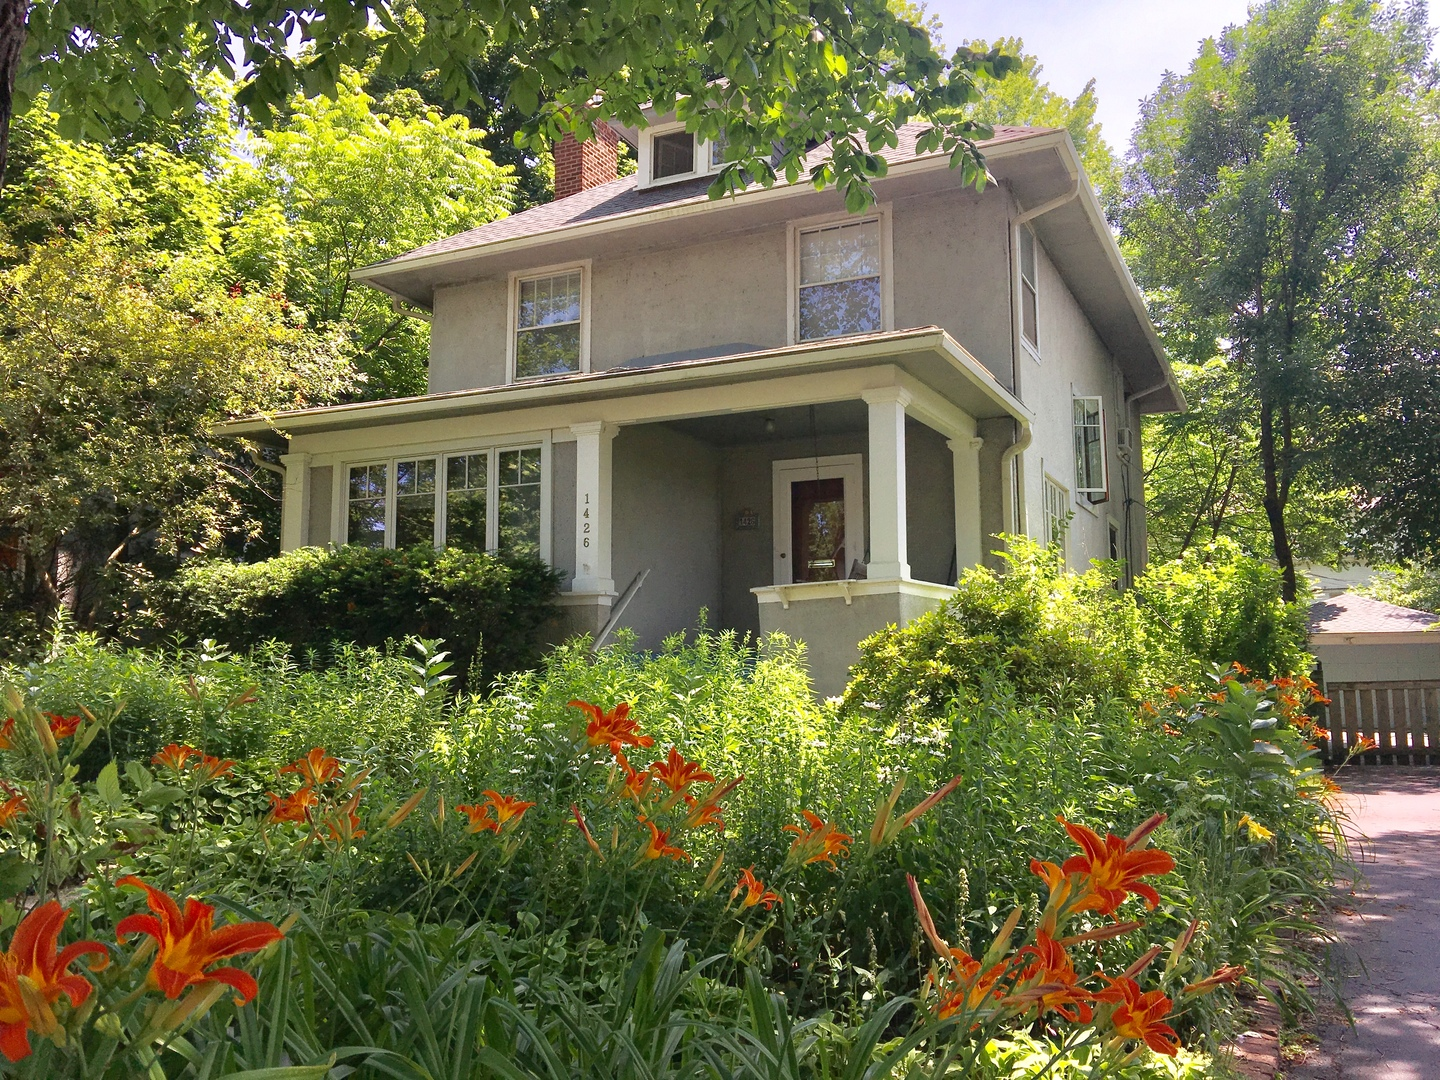 1426 Dempster Street, Evanston in Cook County, IL 60202 Home for Sale